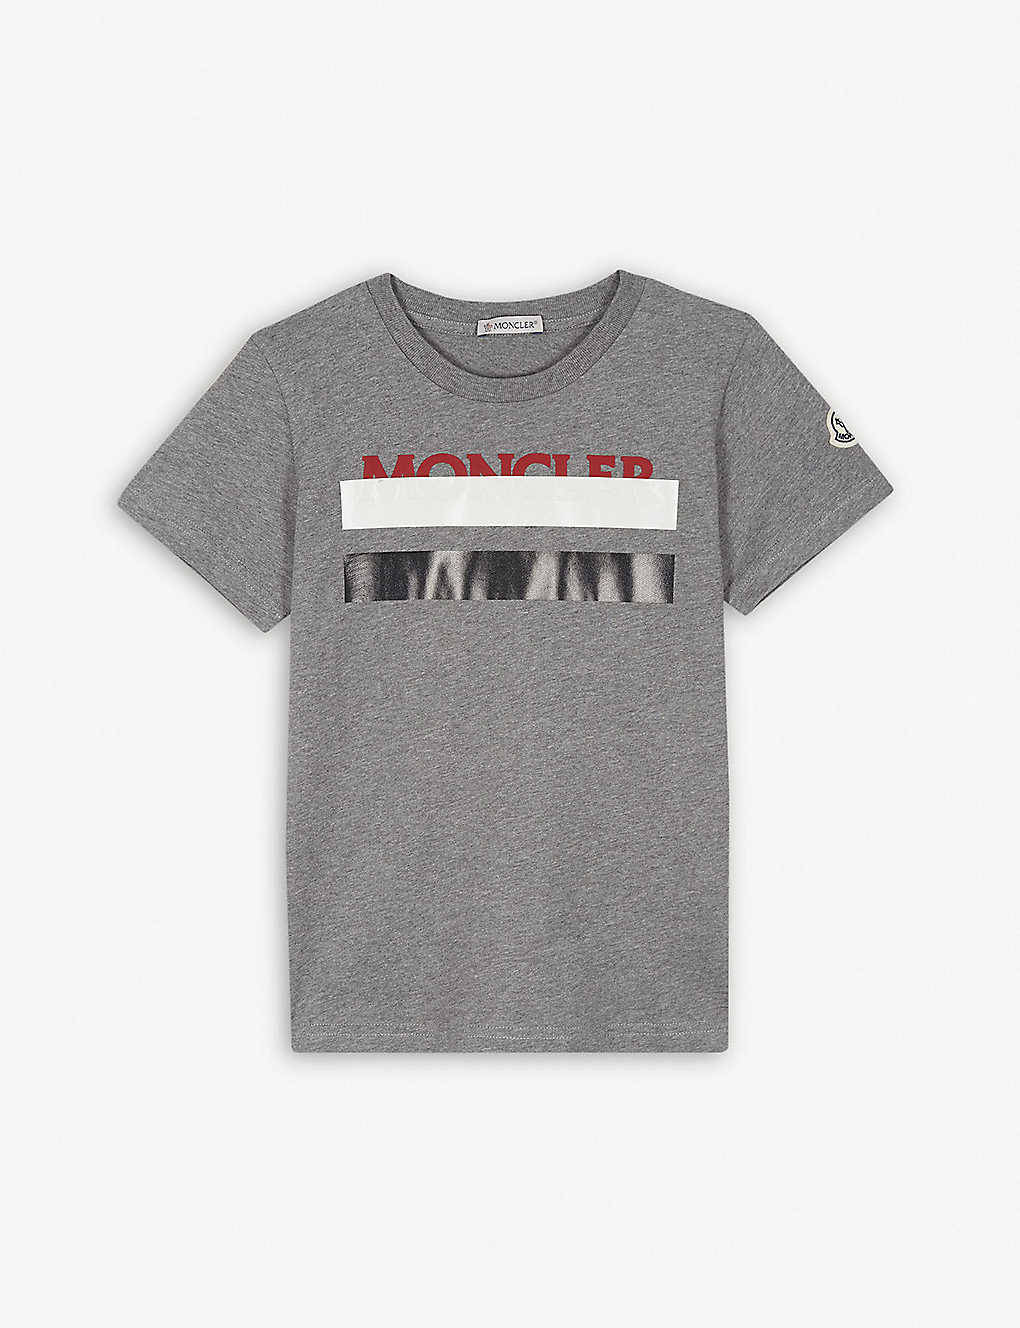 55ab64549 MONCLER - Striped logo T-shirt 4-14 years | Selfridges.com